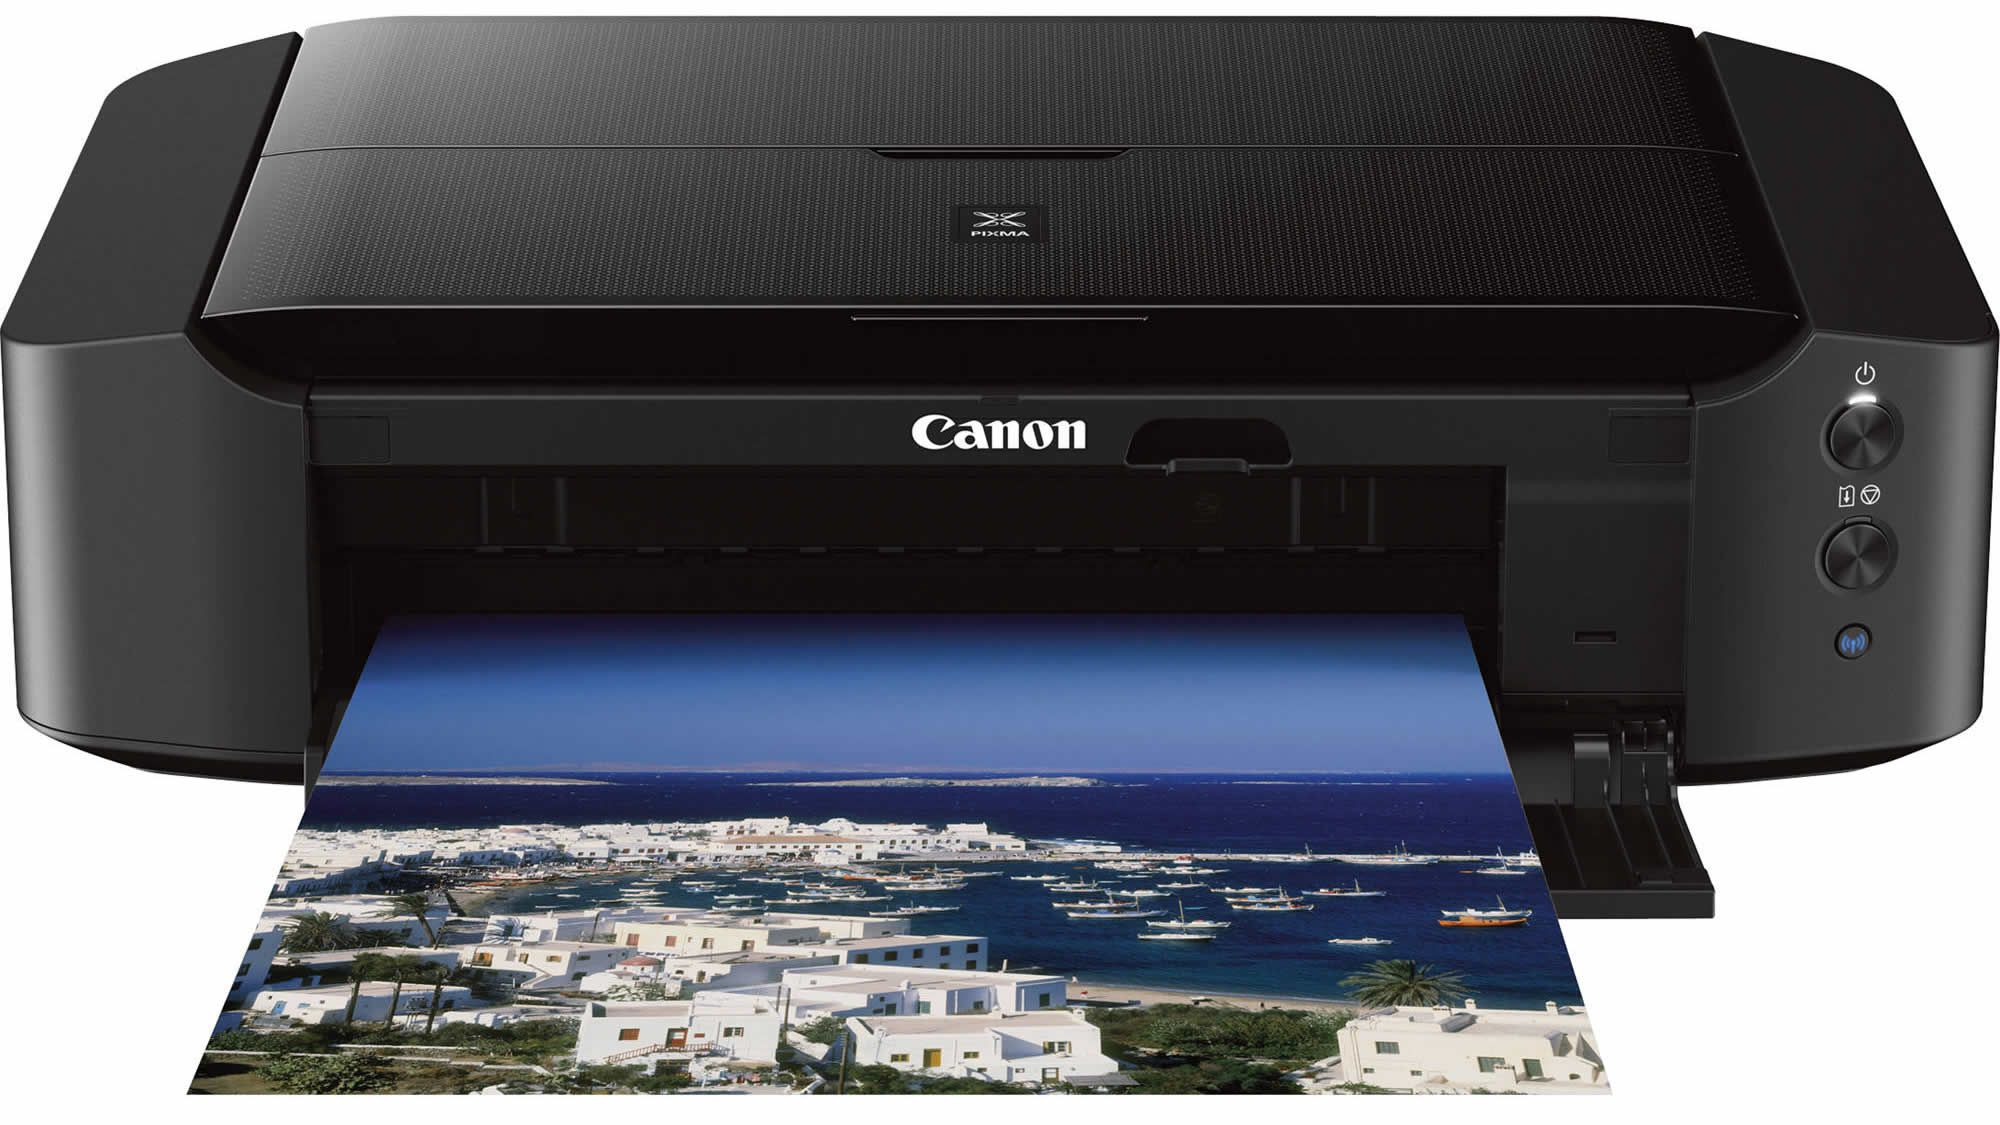 Canons Pixma Mx All in one Is Now the Pixma Mx